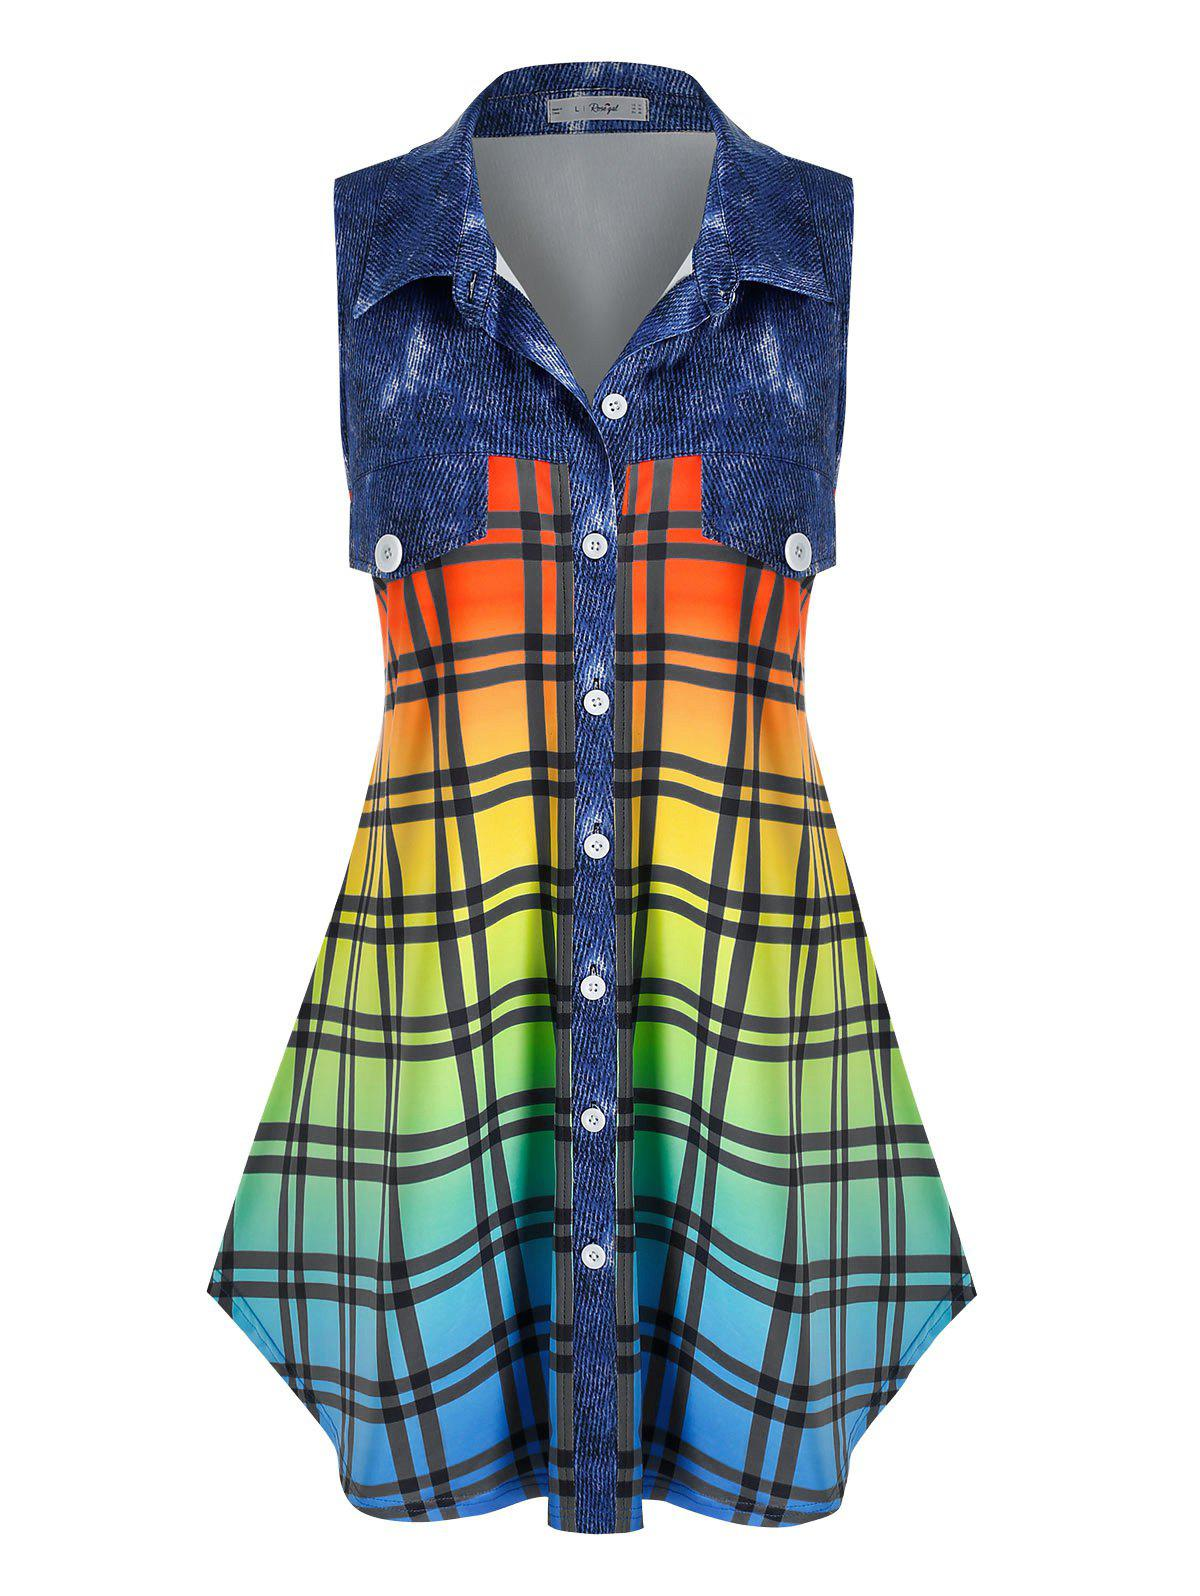 Fashion Plus Size Sleeveless Flap Detail Ombre Color Plaid Blouse